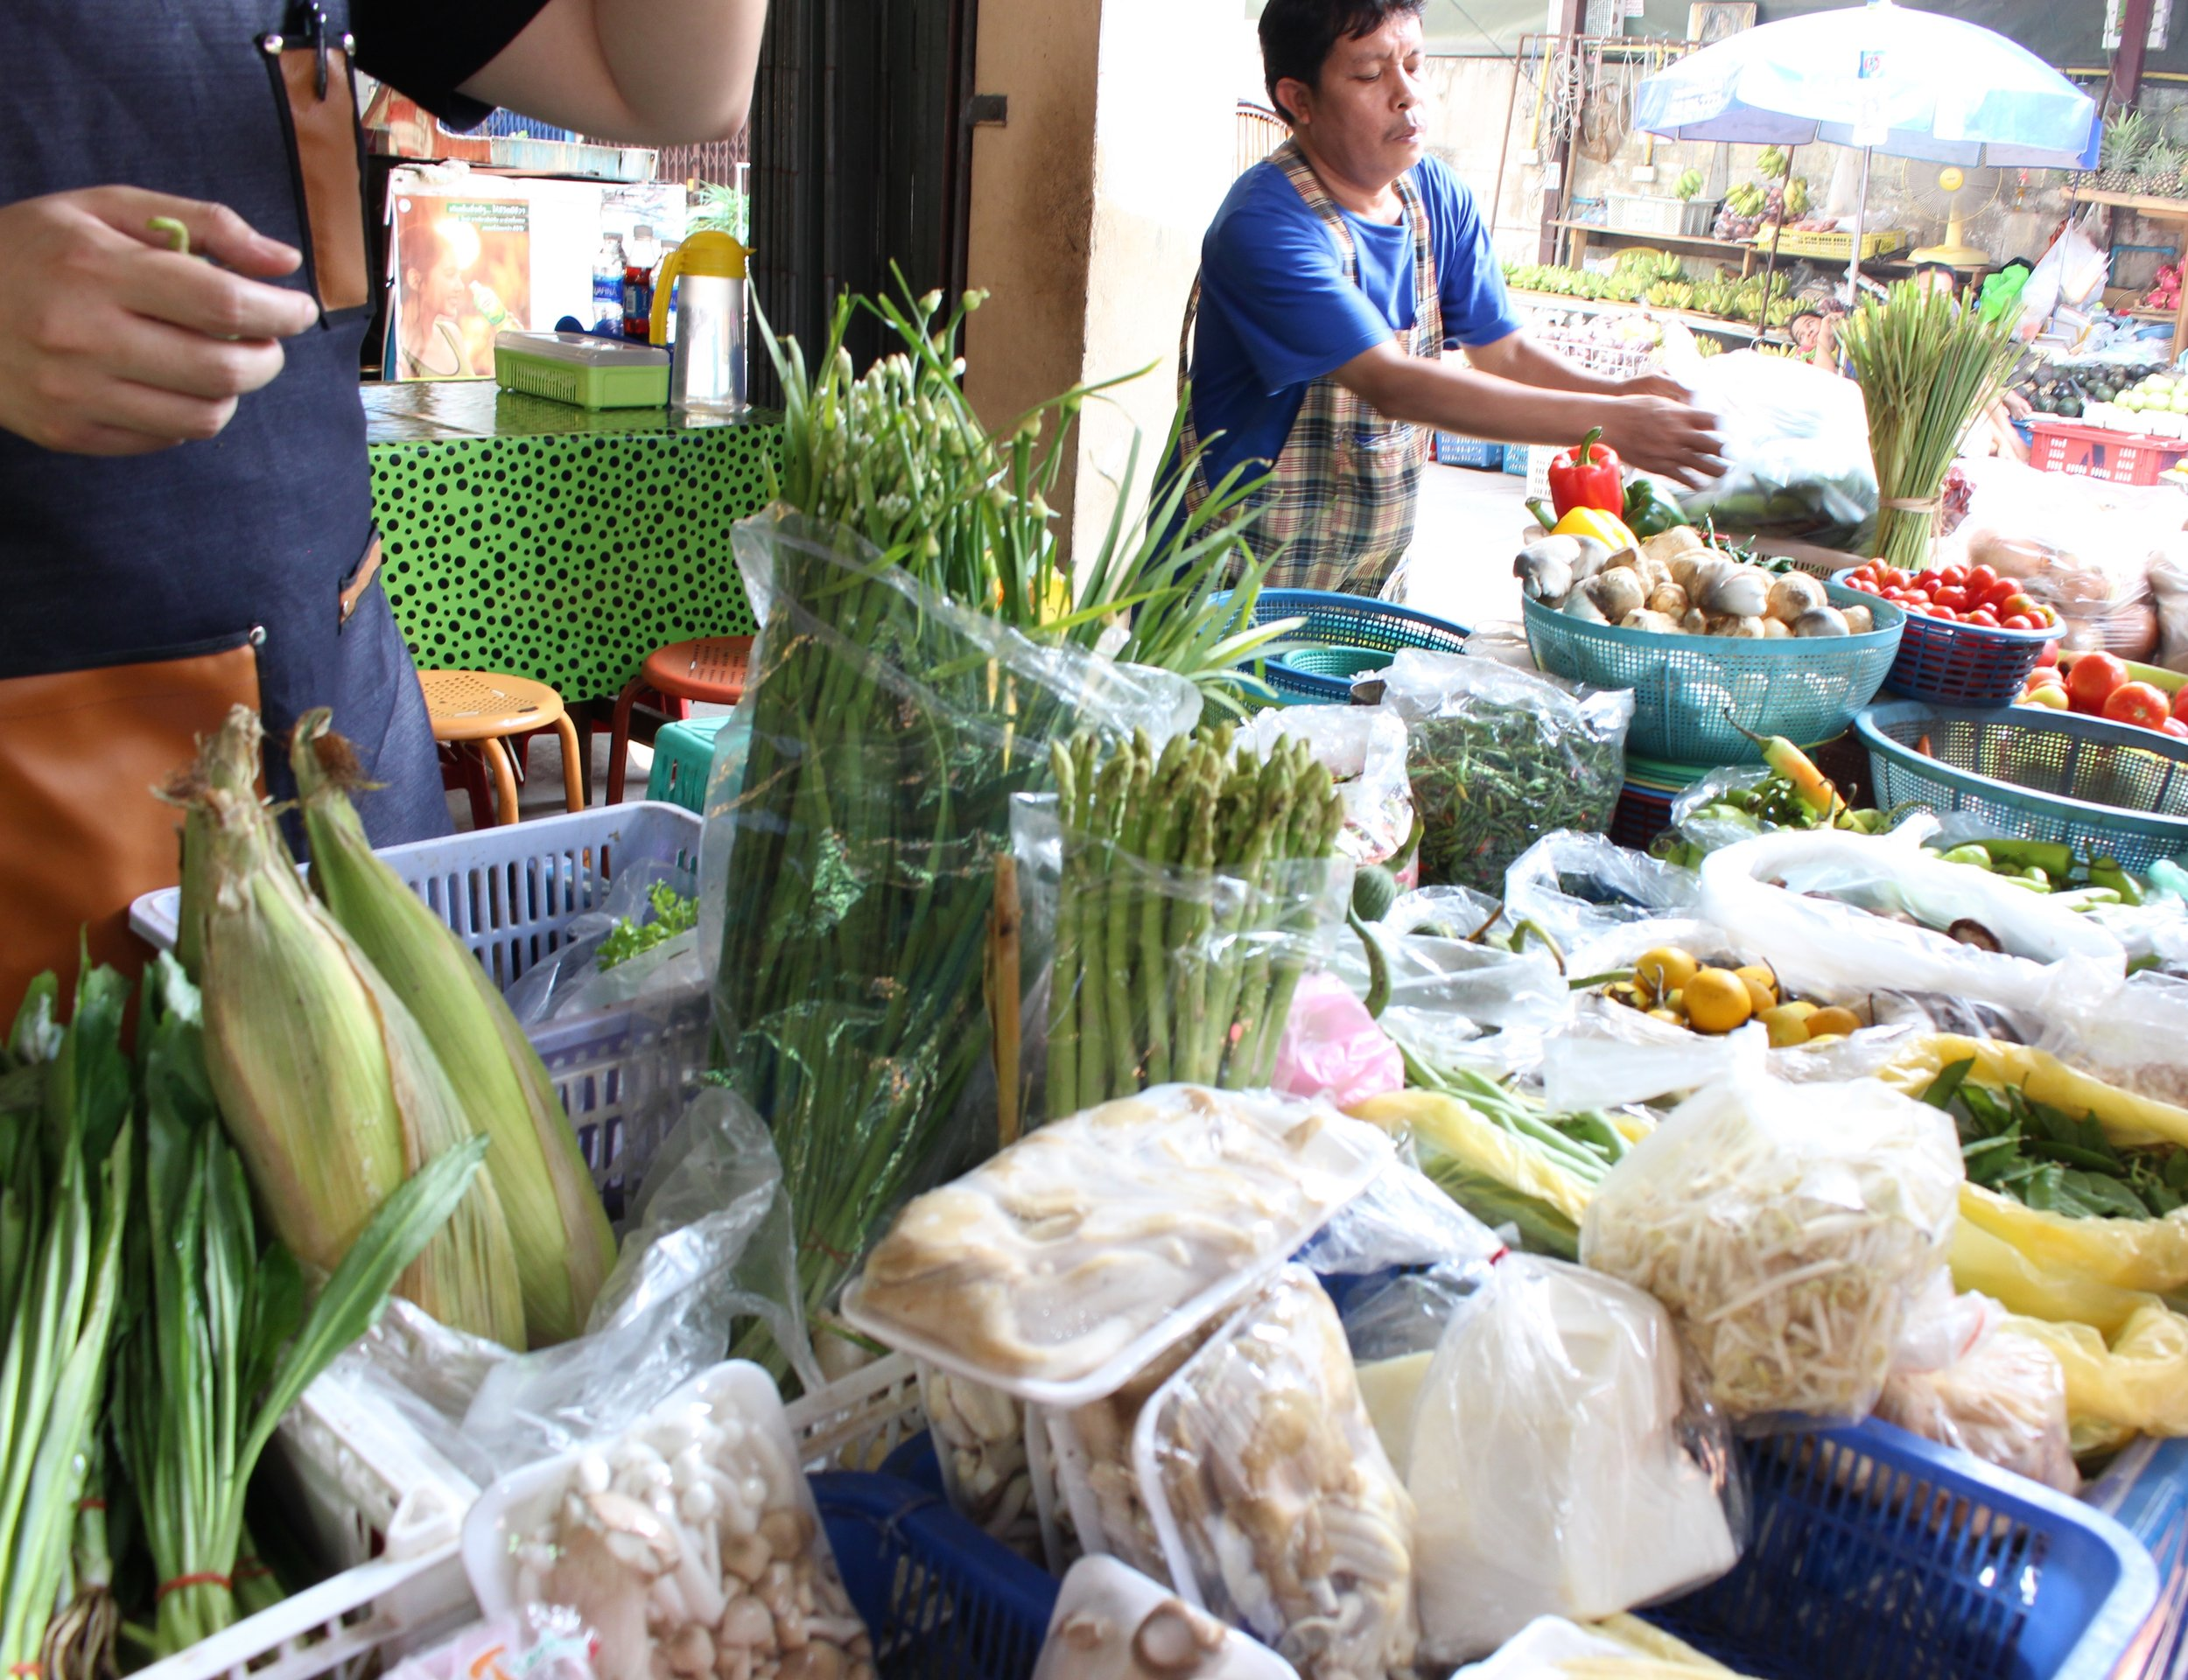 Visiting the market to learn about the different produce